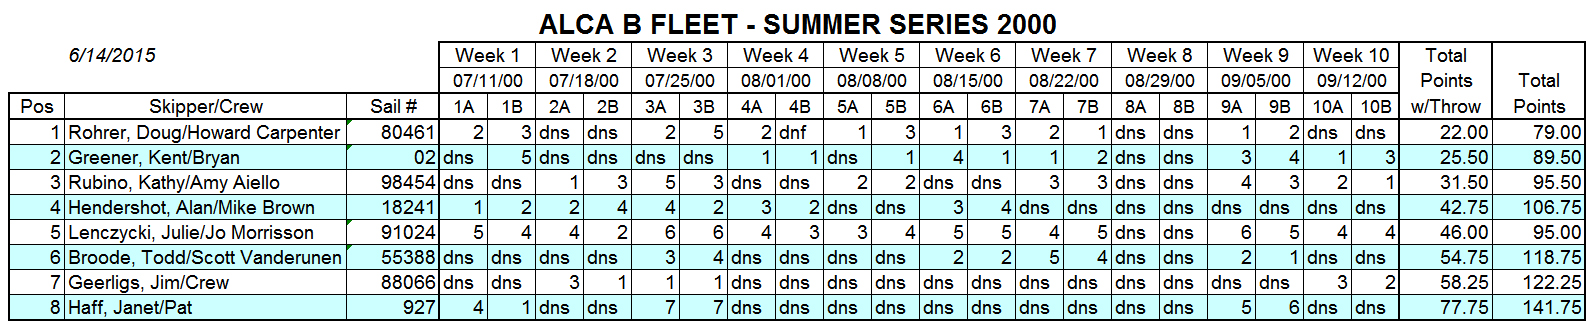 2000 Summer B Fleet Results